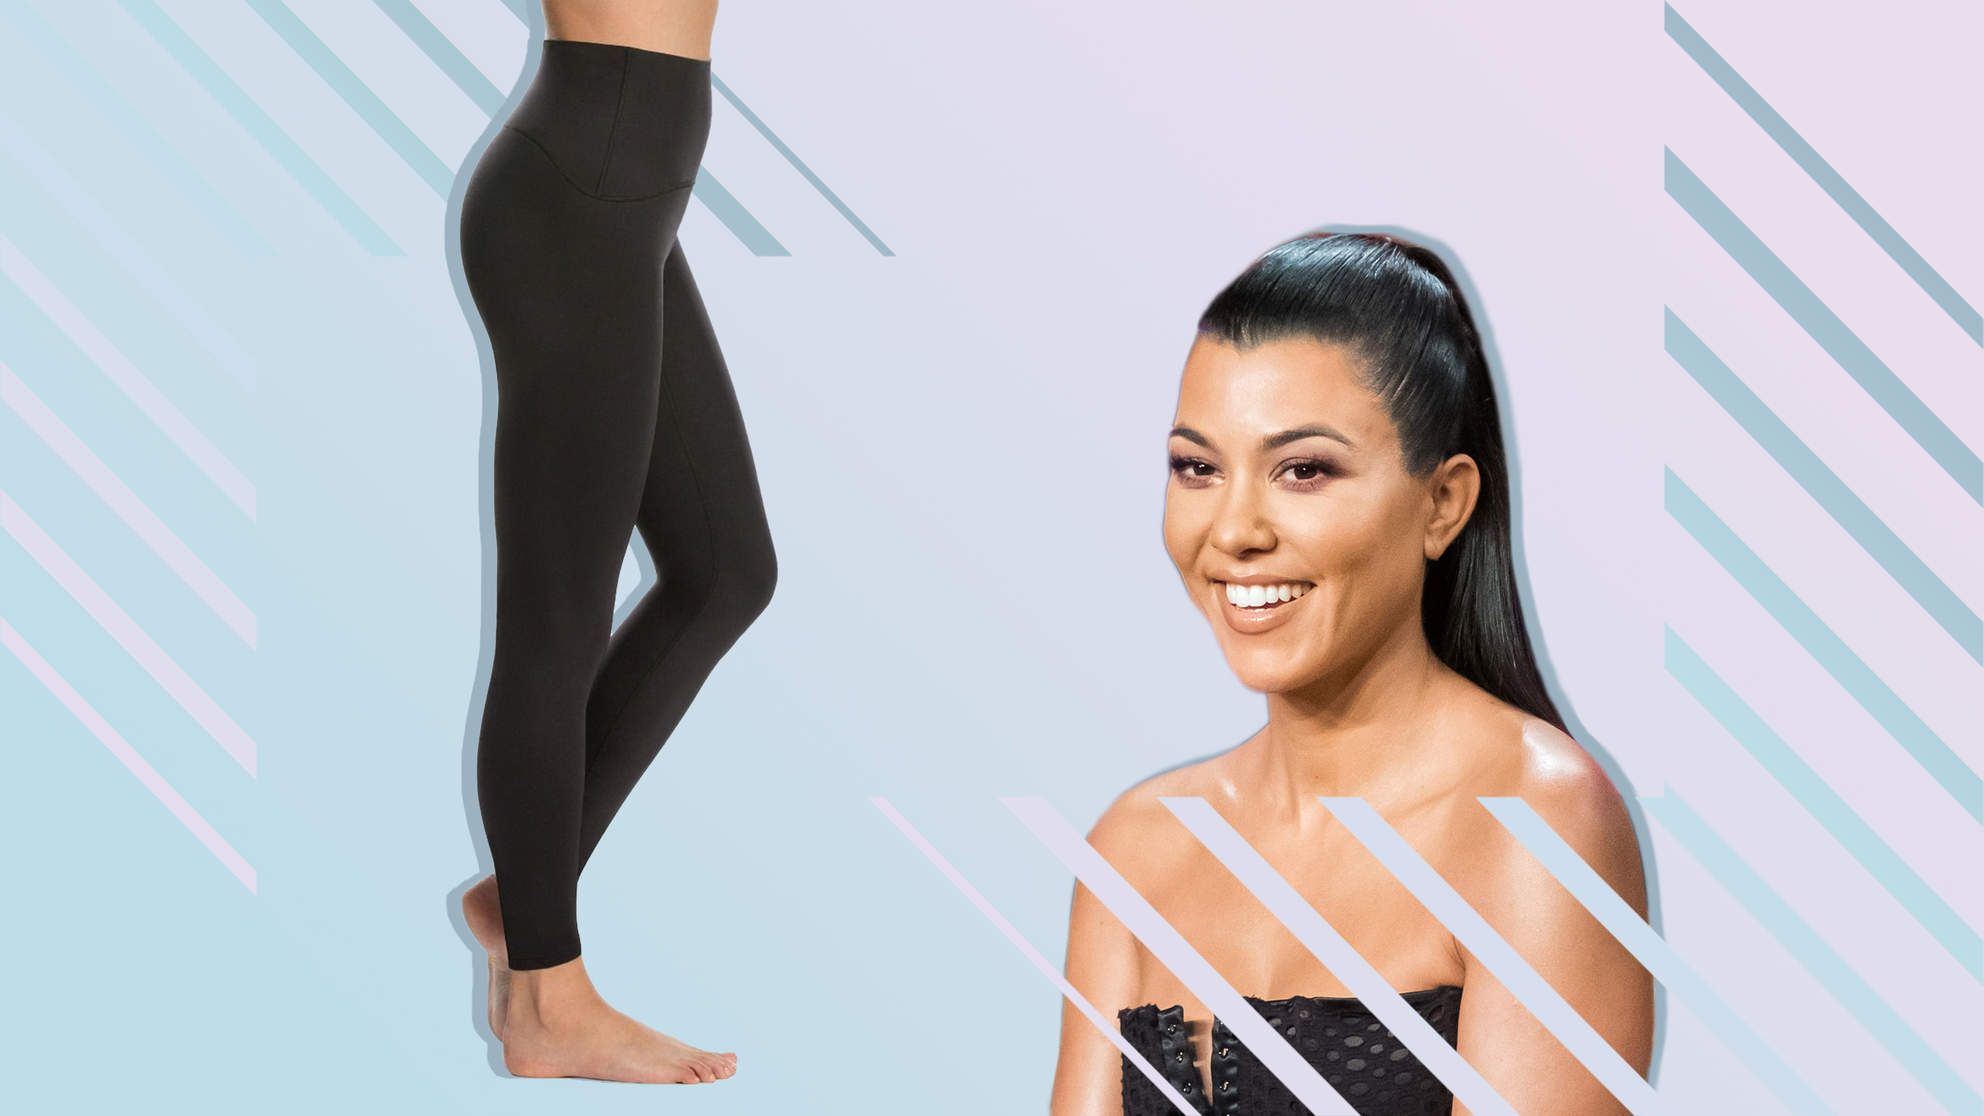 Kourtney Kardashian's Favorite Leggings Are So Good, Everyone Should Own A Pair